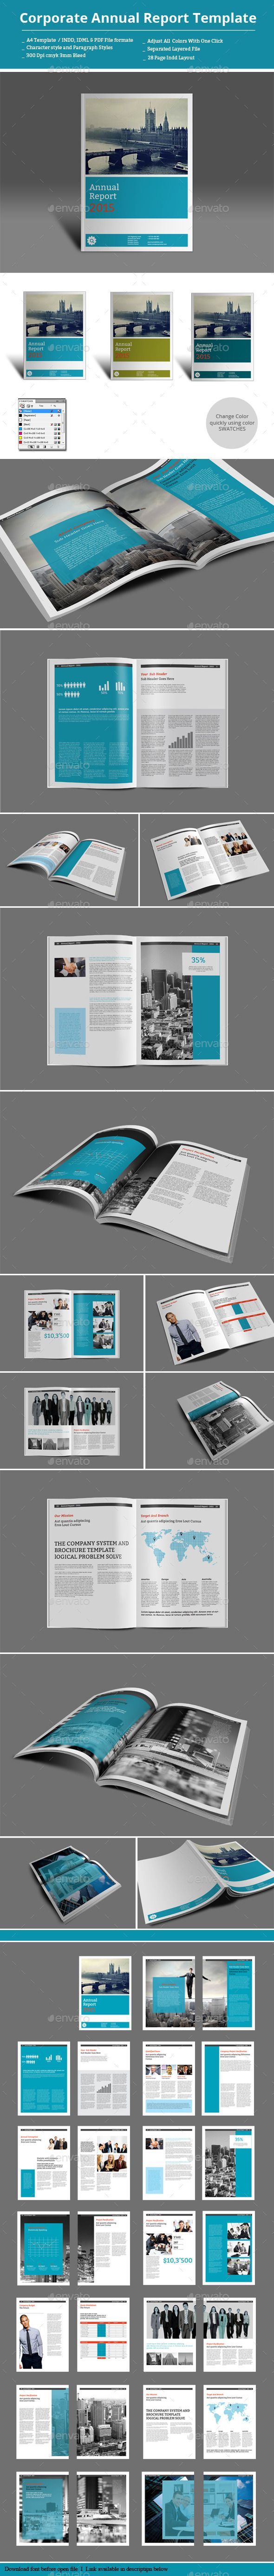 Corporate Annual Report Template — InDesign INDD #folio #layered • Available here → https://graphicriver.net/item/corporate-annual-report-template/9347443?ref=pxcr